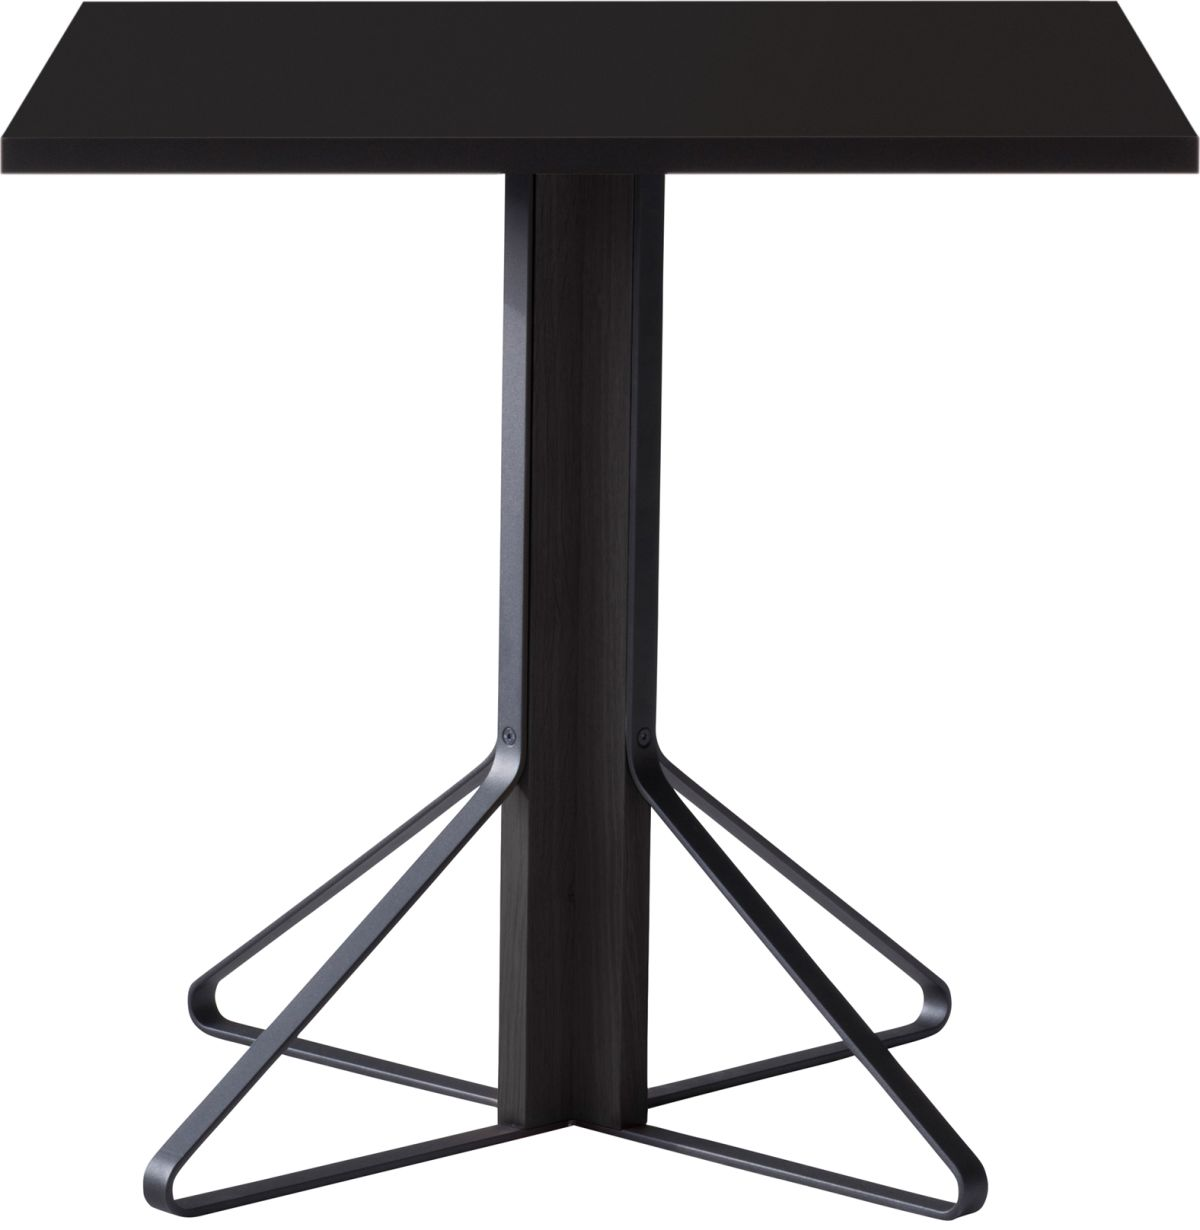 Kaari_Table_square_legs black laquered oak_top black HPL